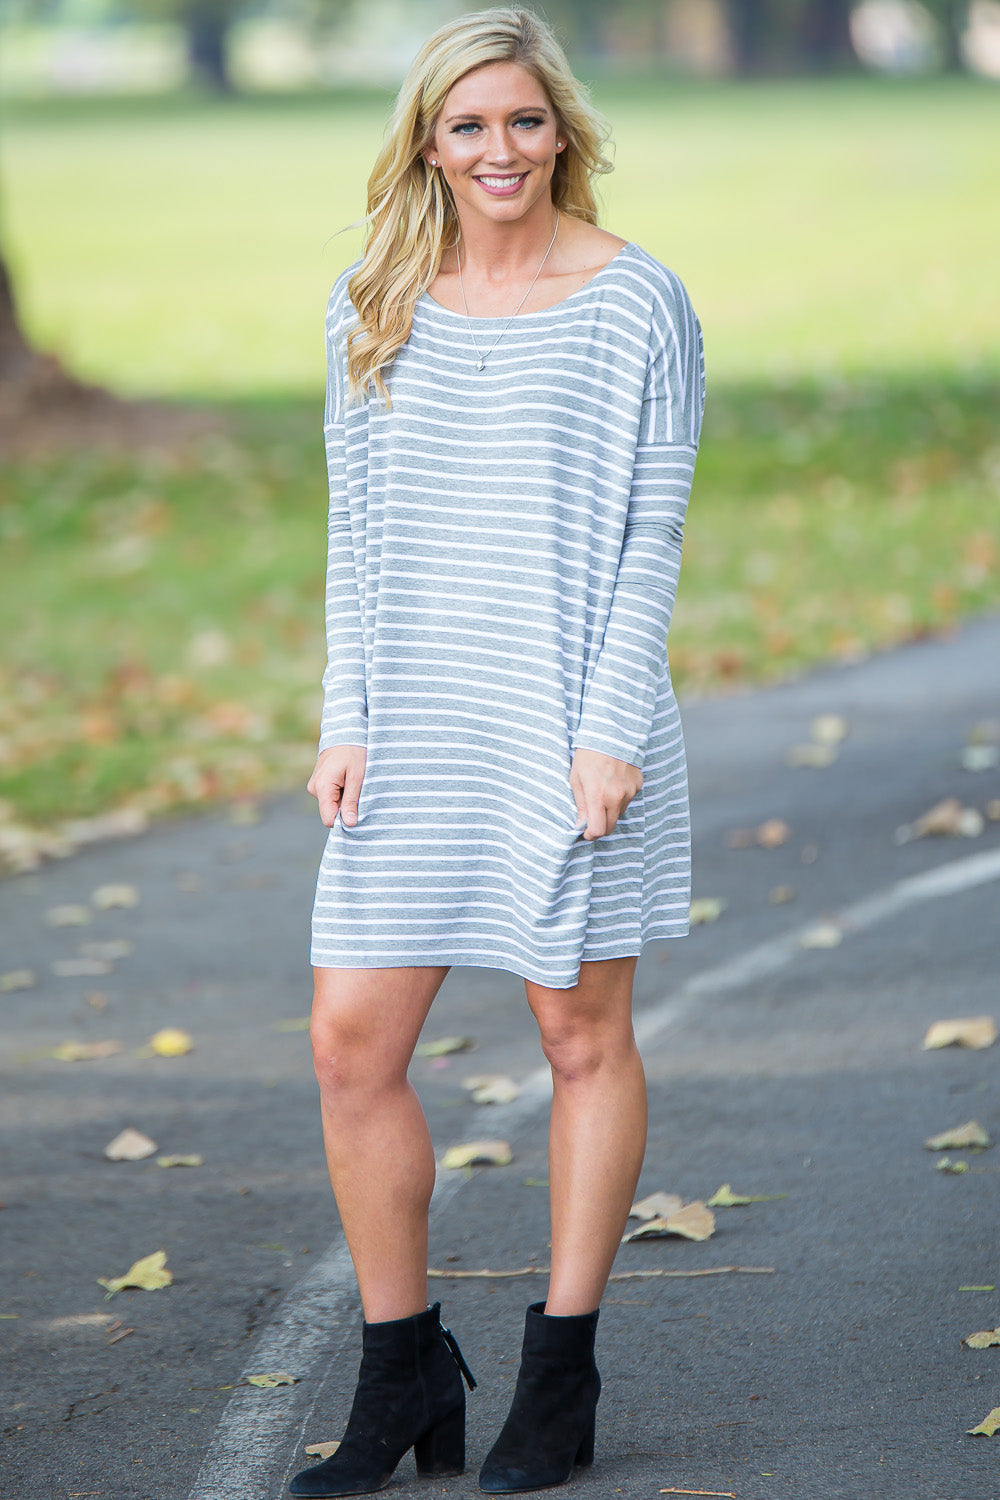 Long Sleeve Tiny Stripe Piko Tunic - Heather/White - Piko Clothing